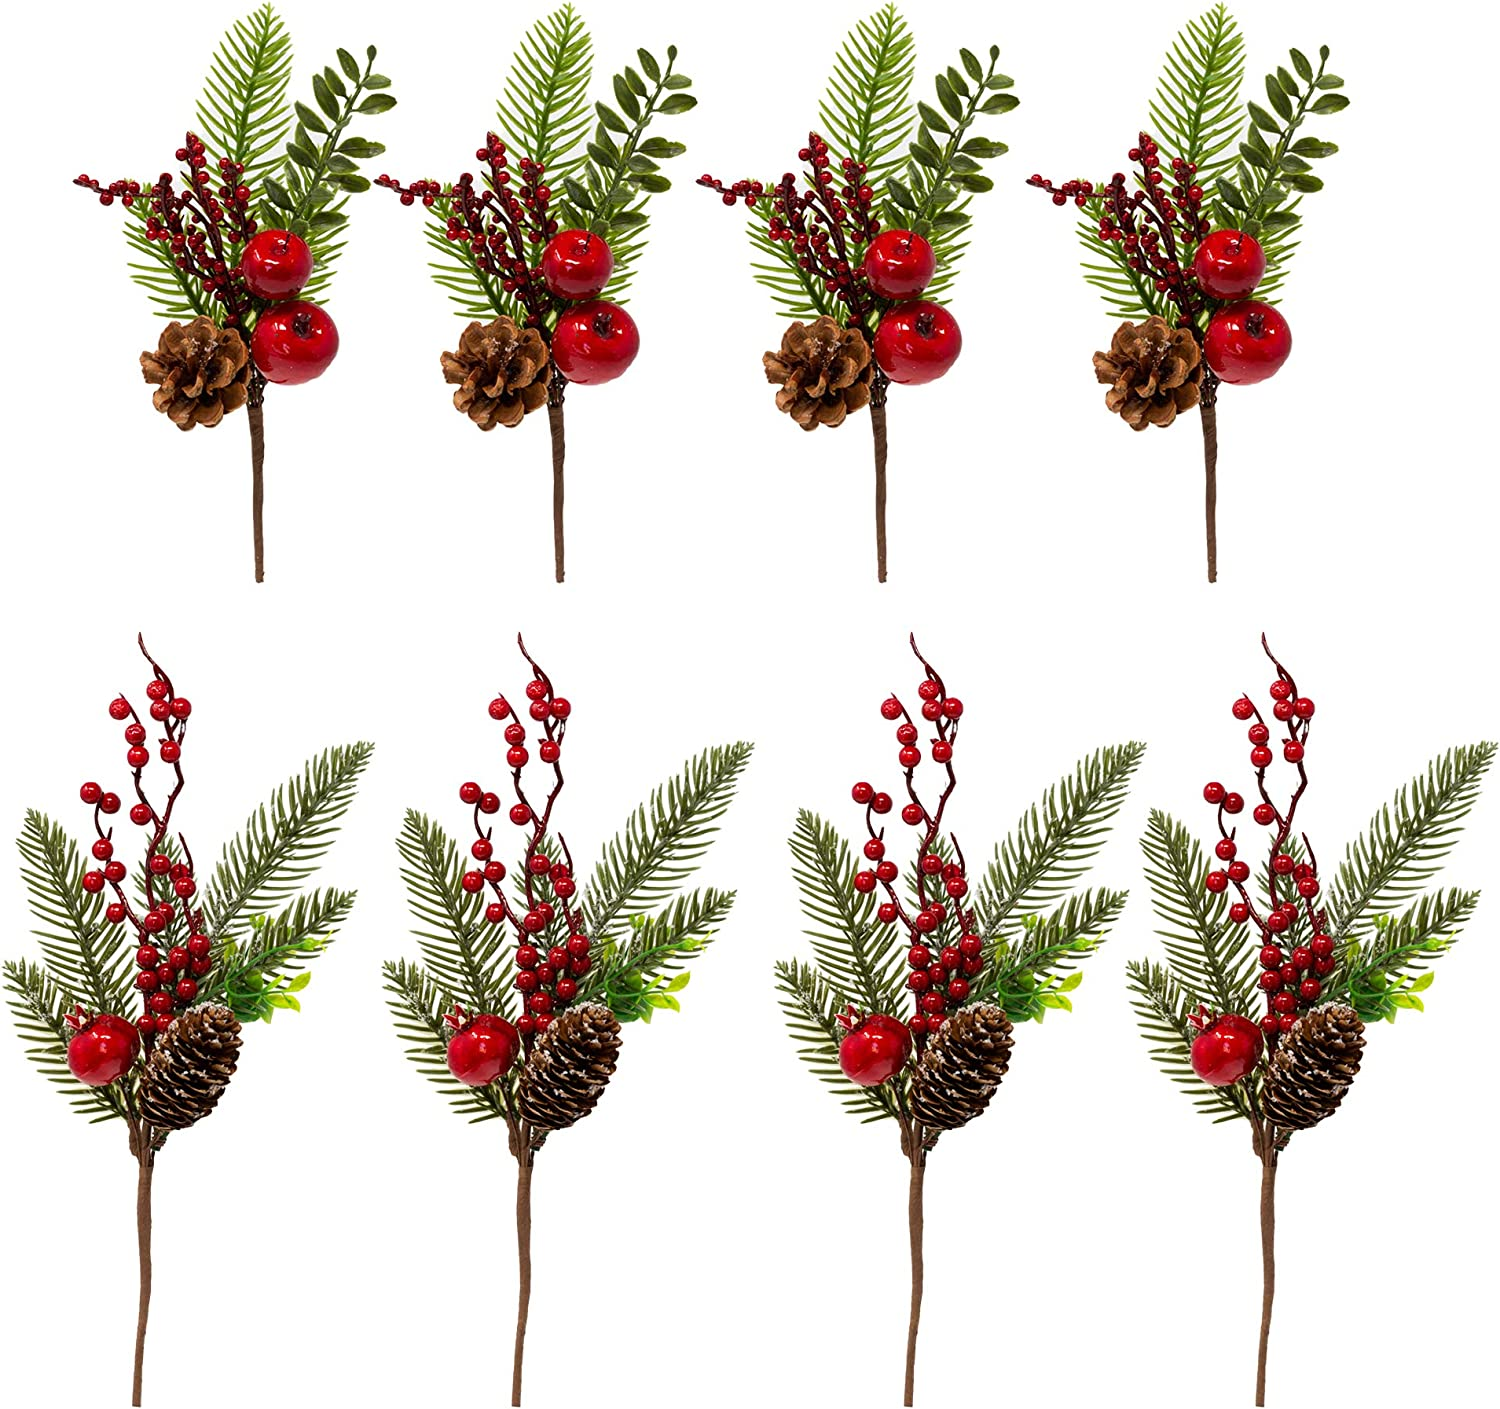 BANBERRY DESIGNS Pine Snowy Flower Picks 8 Pieces – Snow Flocked Red Holly Berry Pine Cone Holiday Floral Sprays – DIY for Christmas Crafts Party Festive Home Décor…